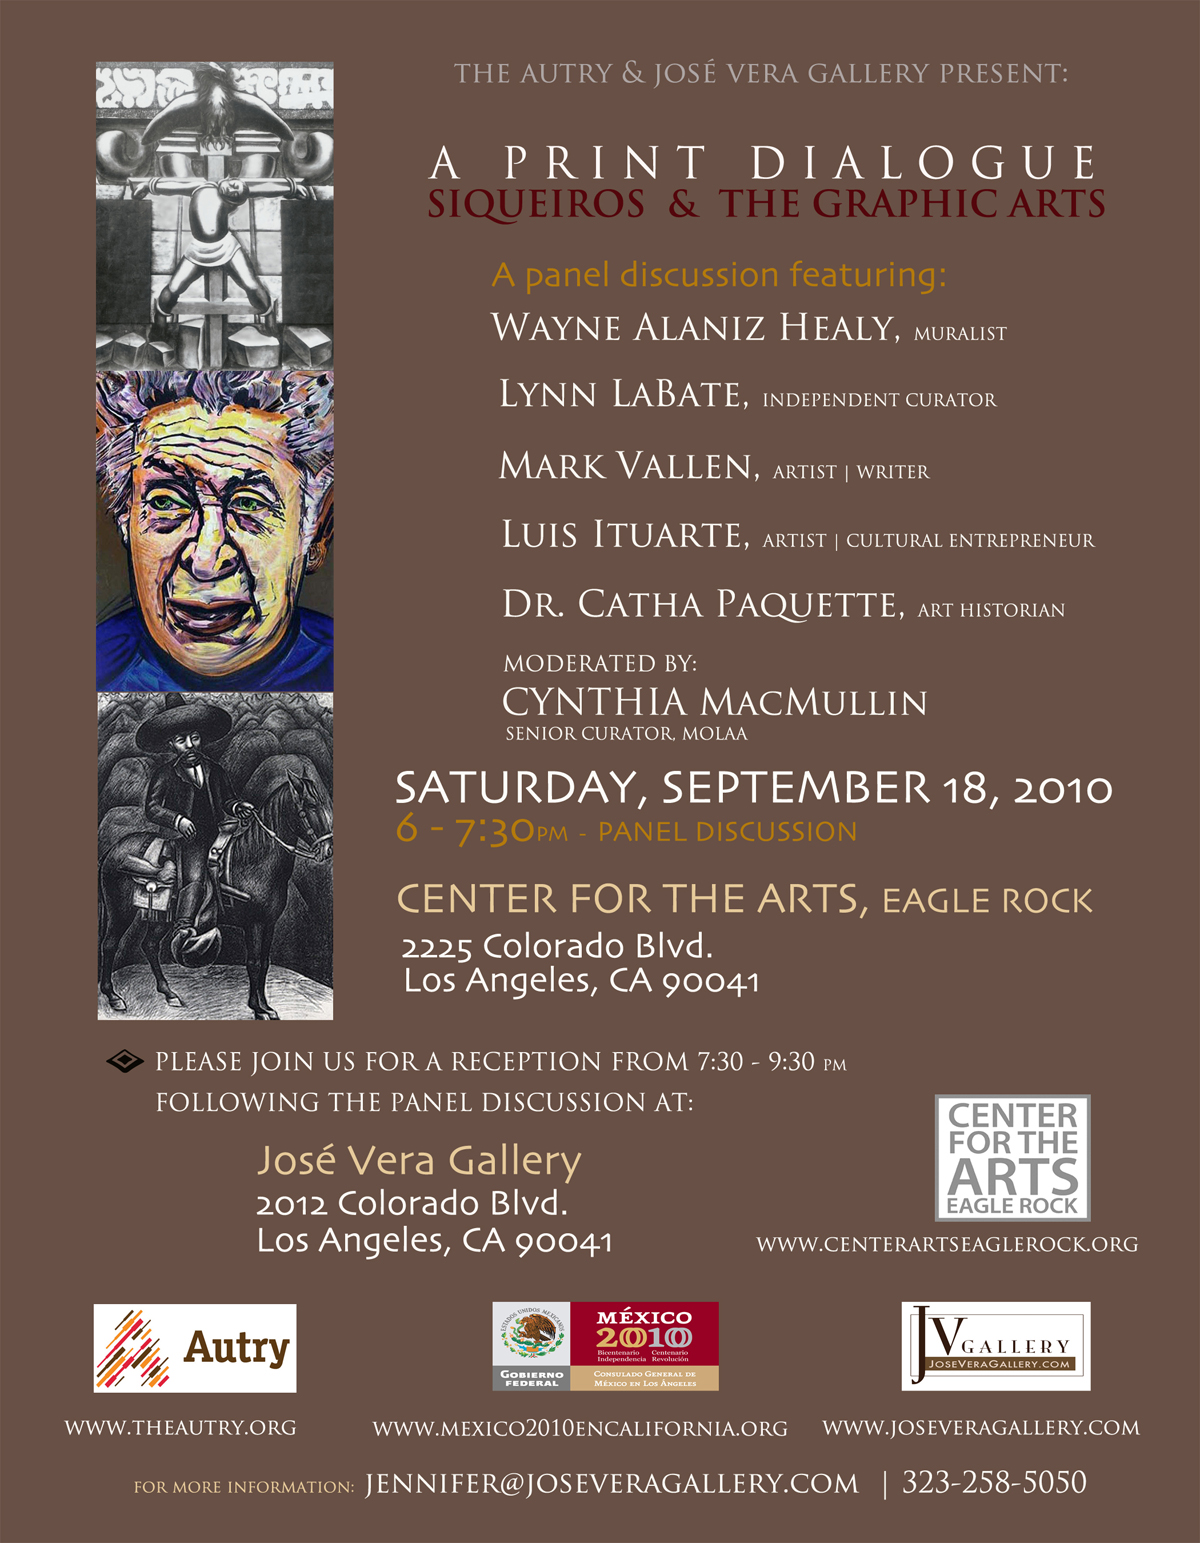 Invitation card to Siqueiros panel discussion